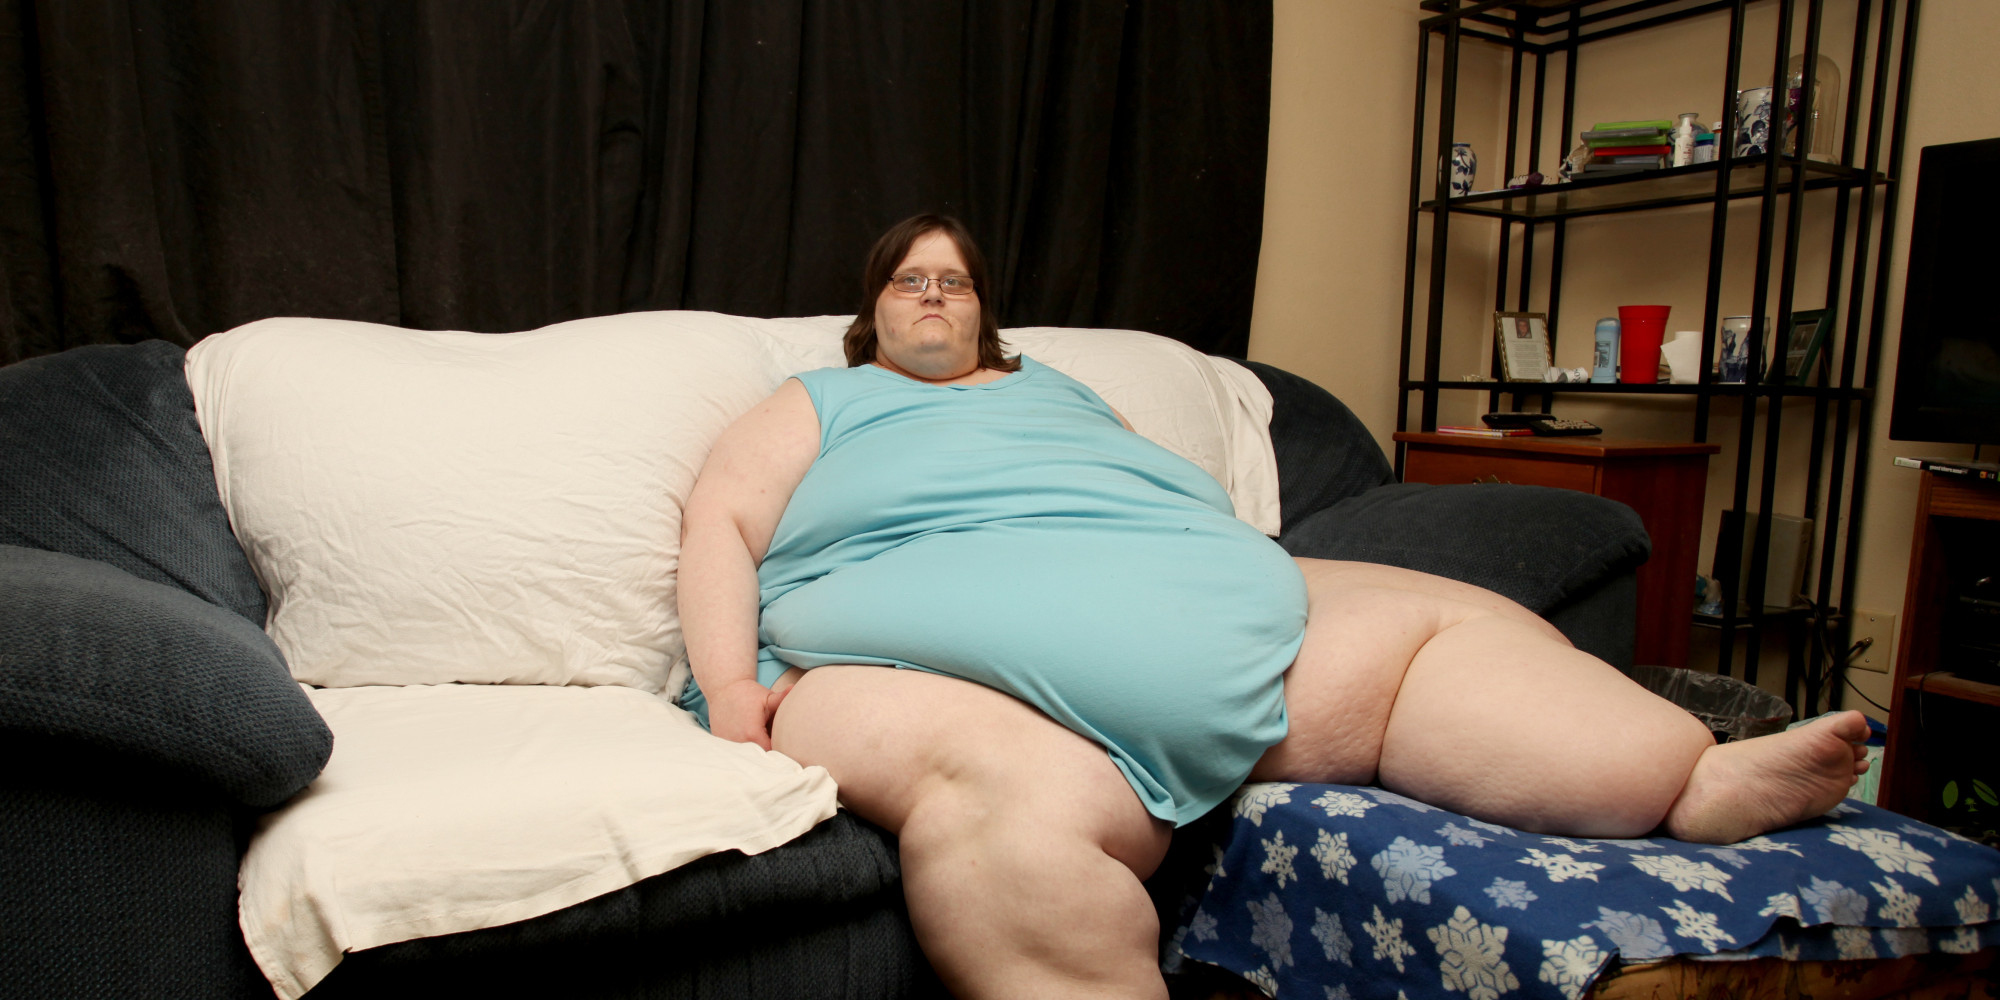 Consider, that biggest fattest woman in the world understand you